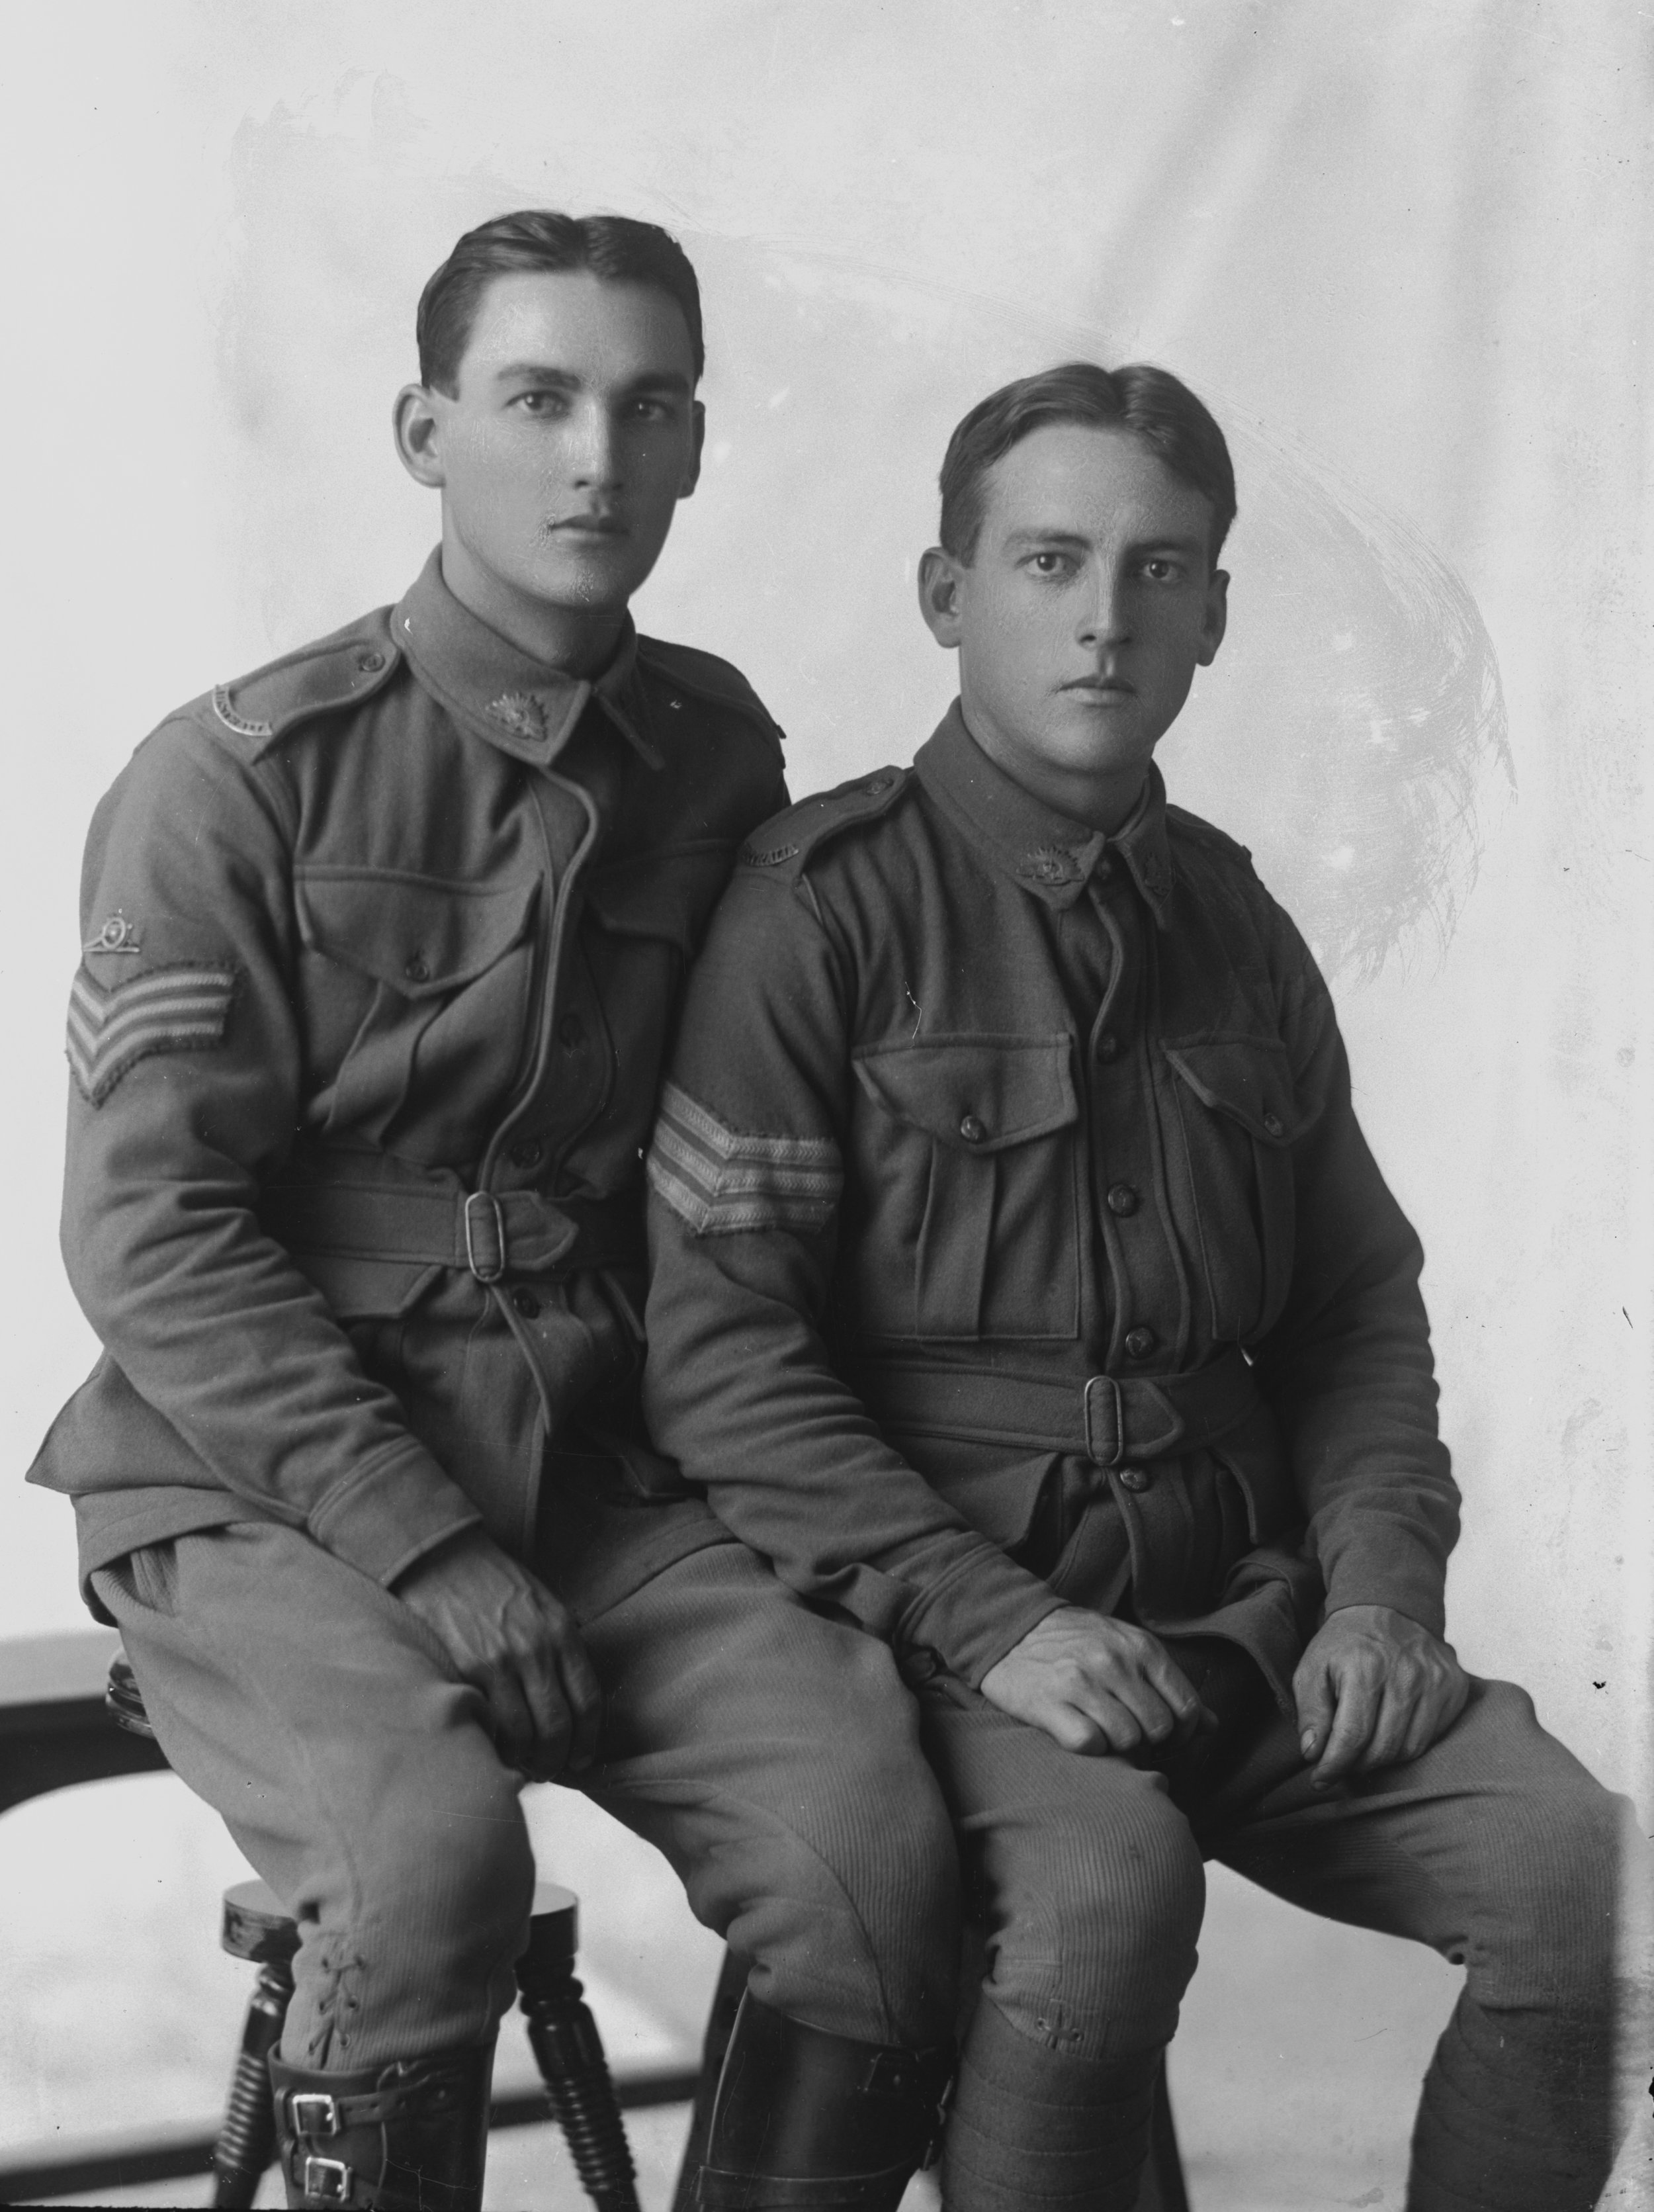 Photographed at the Dease Studio, 117 Barrack Street Perth WA Image courtesy of the State Library of Western Australia: 108415PD